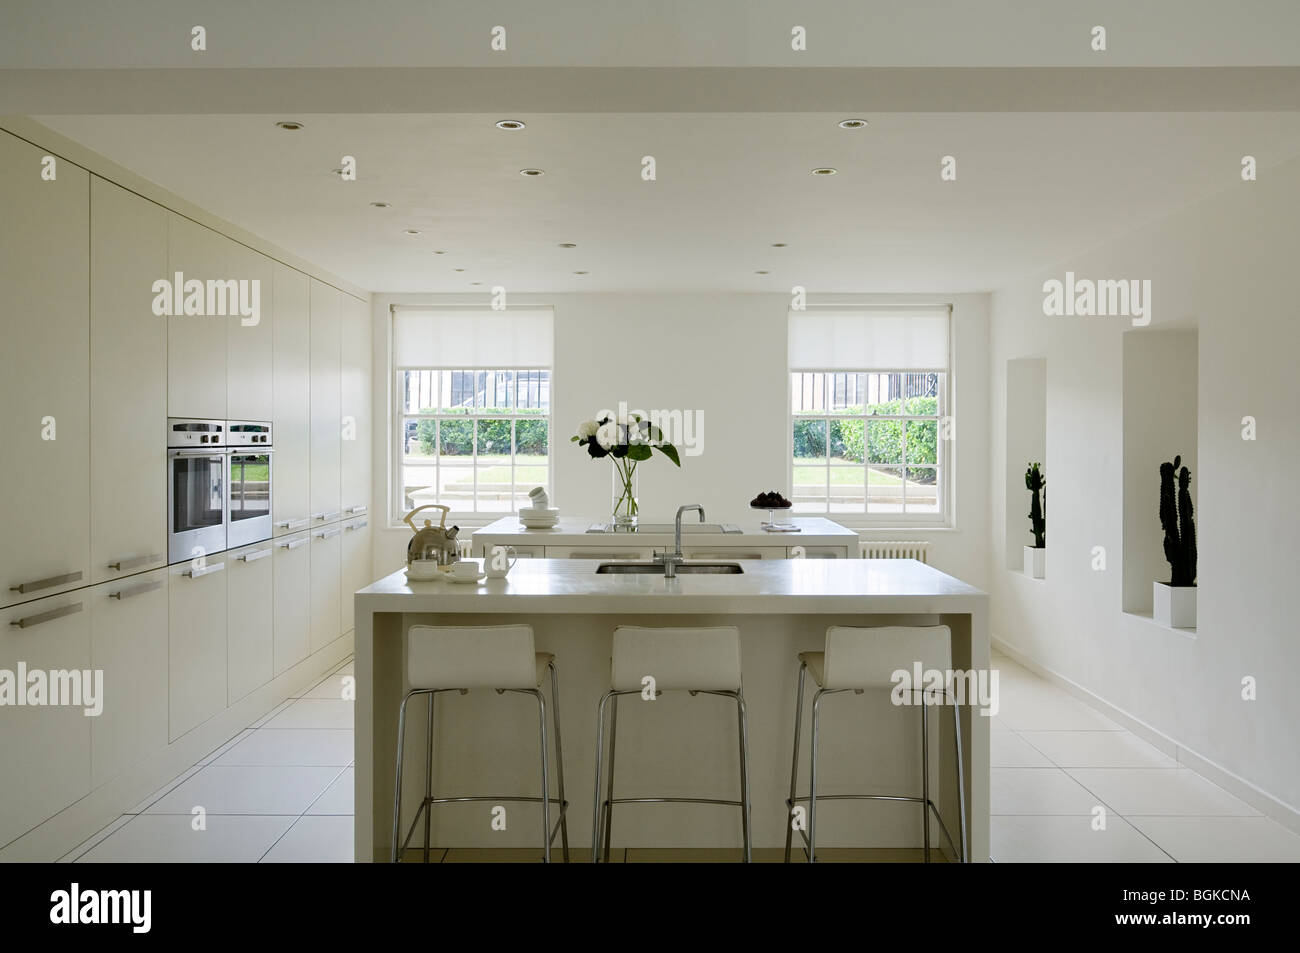 Minimalist kitchen in in white with barstools and island - Stock Image